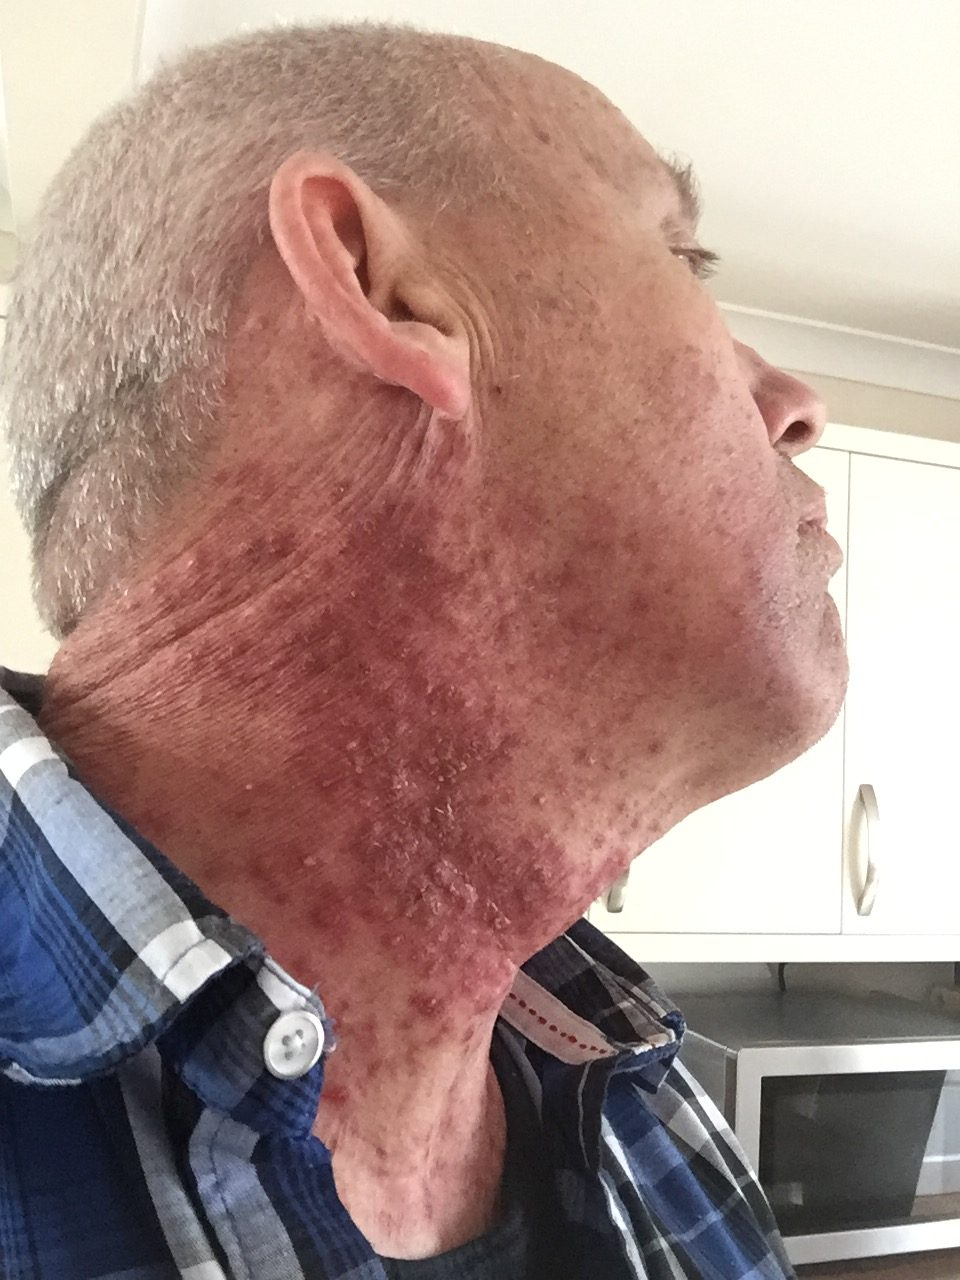 hpv throat cancer after treatment